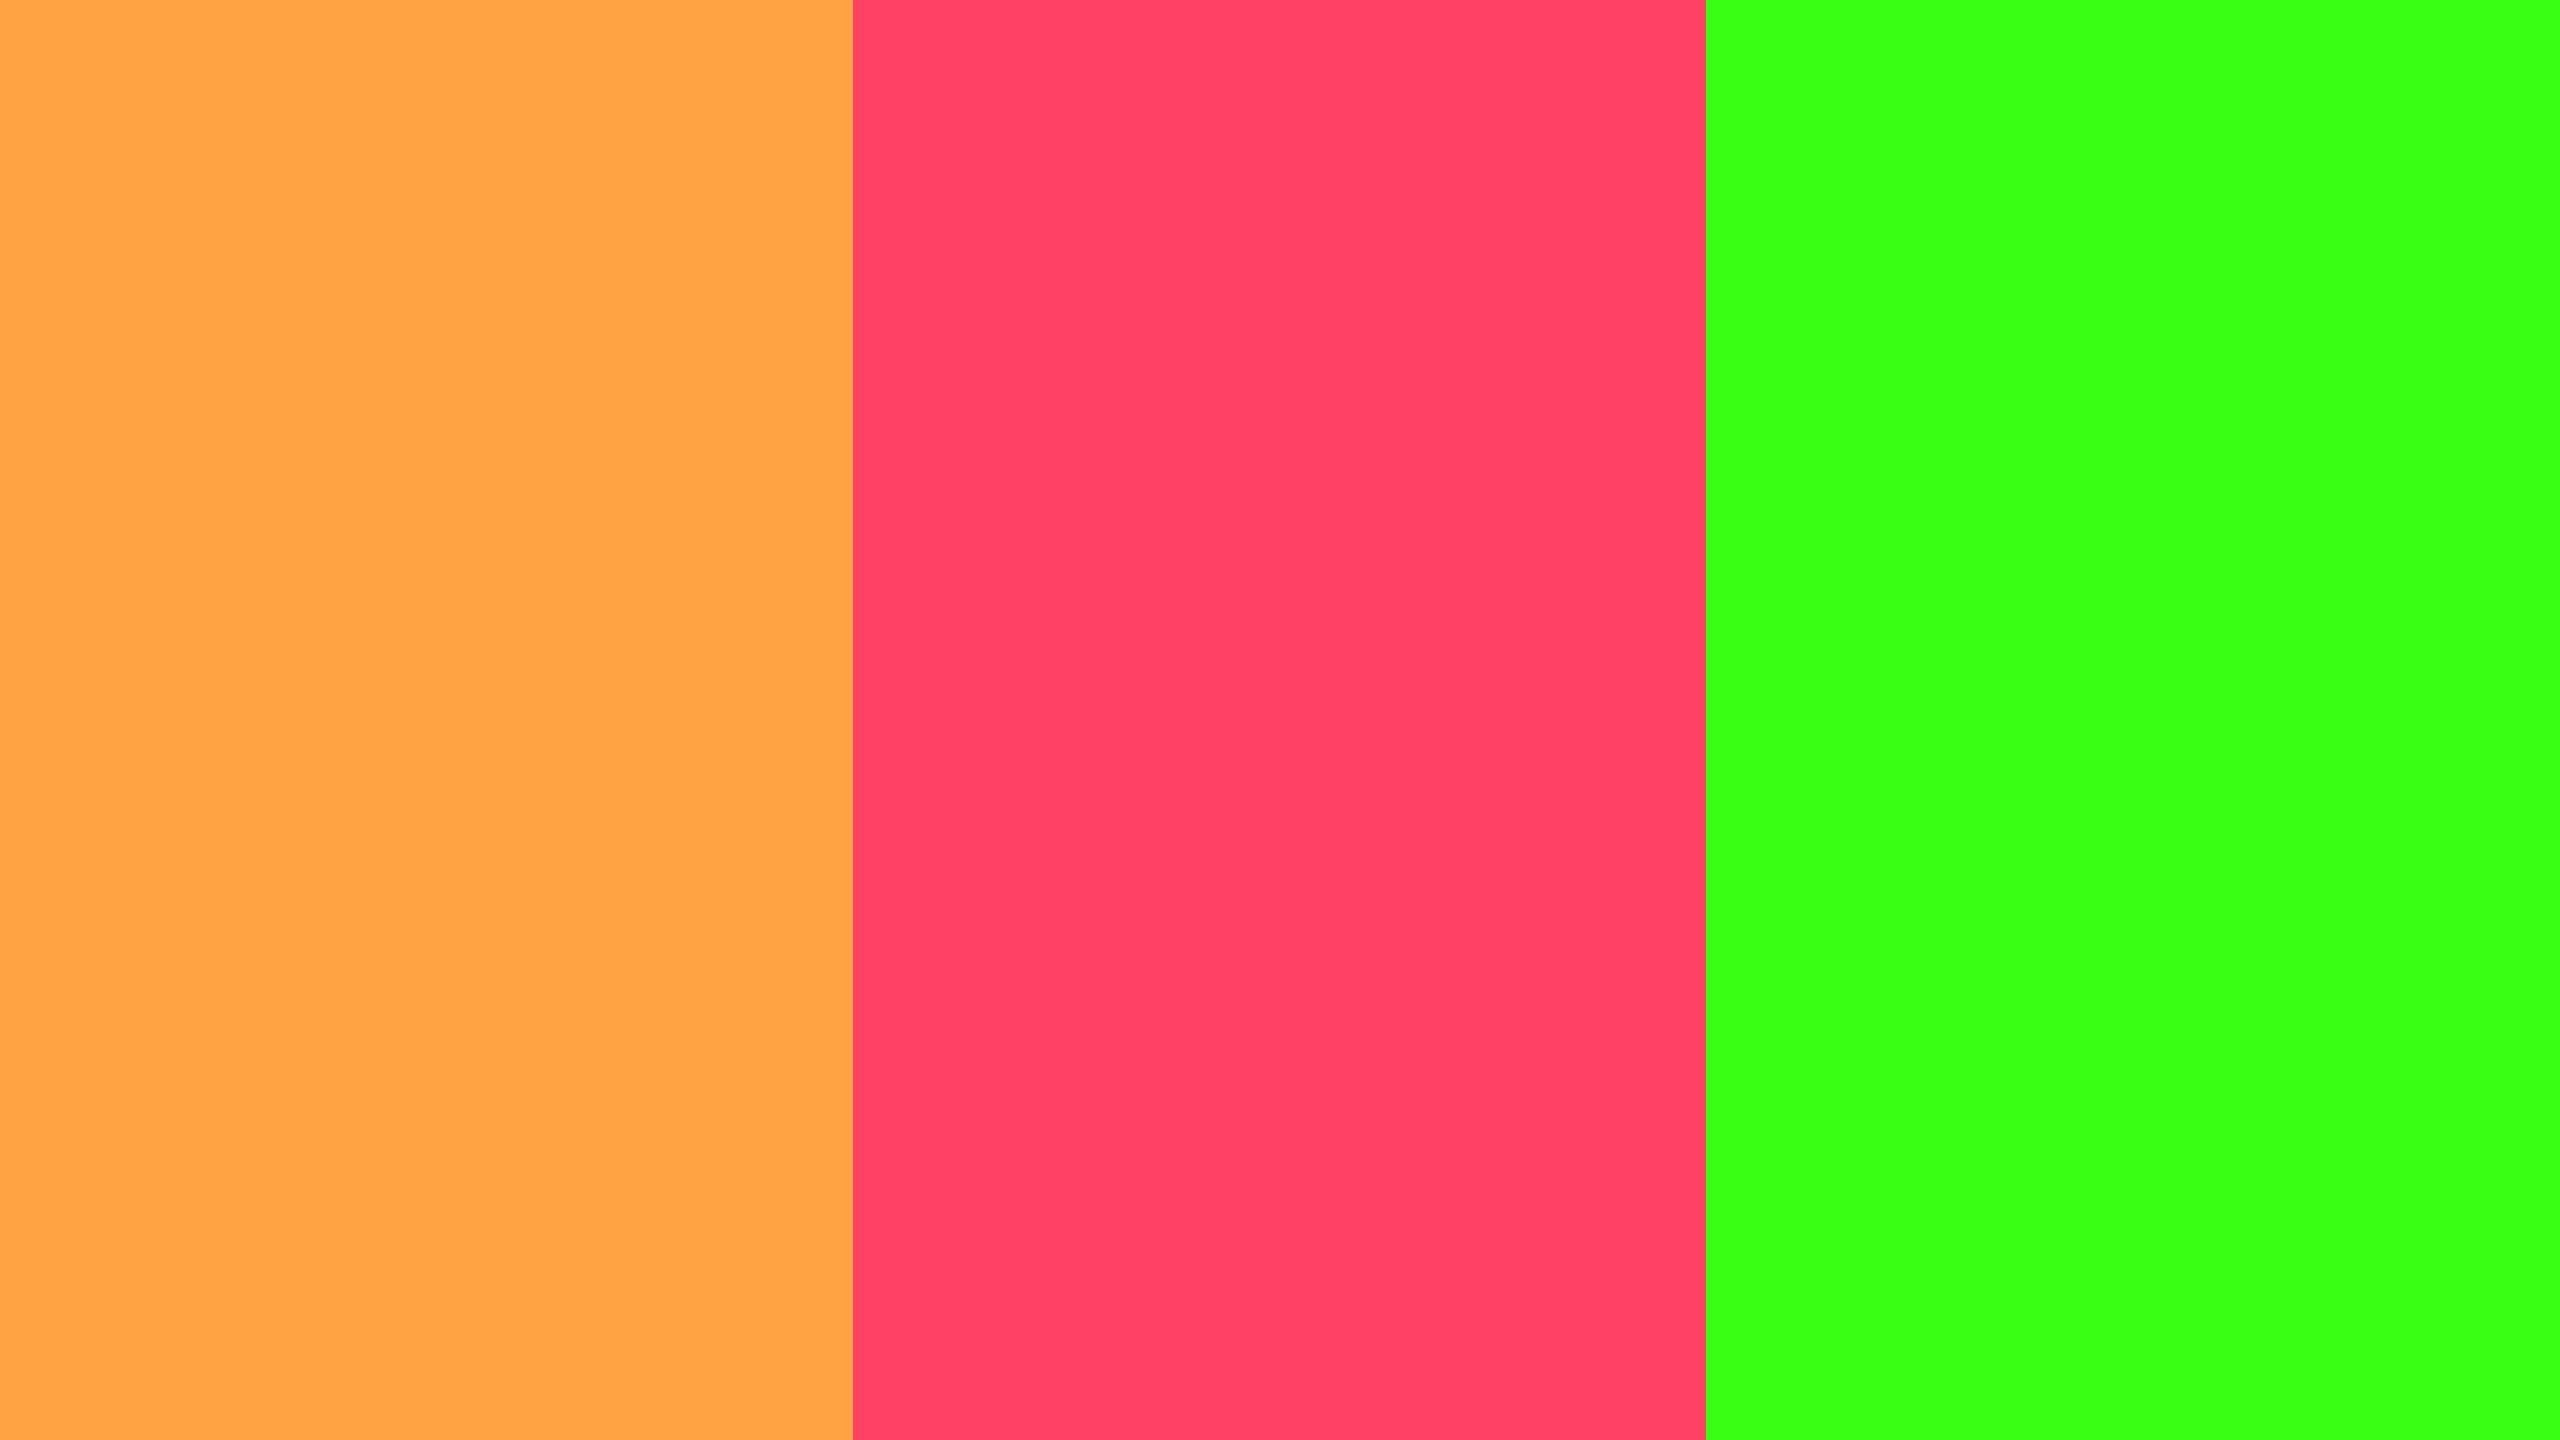 Neon Carrot, Neon Fuchsia and Neon Green Three Color .